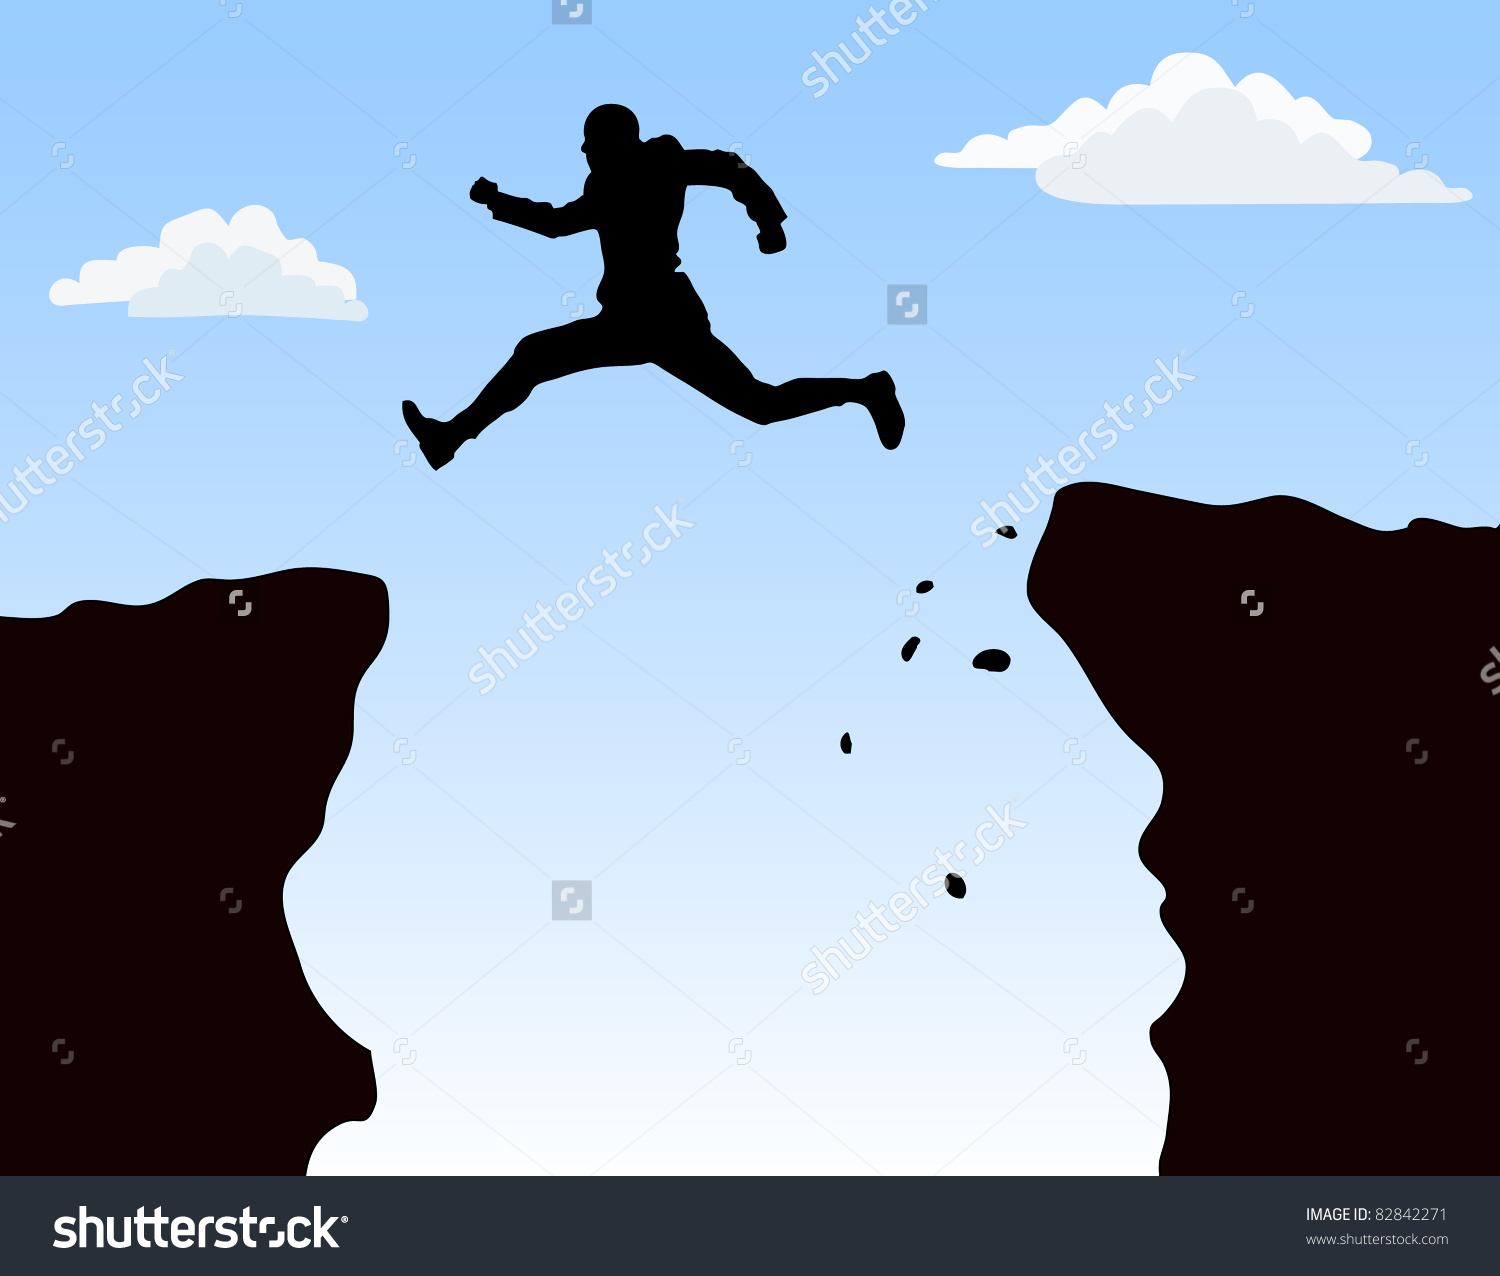 Cliff diving clipart png royalty free download OnlineLabels Clip Art - Man Jumping Cliff #88721 - Clipartimage.com png royalty free download